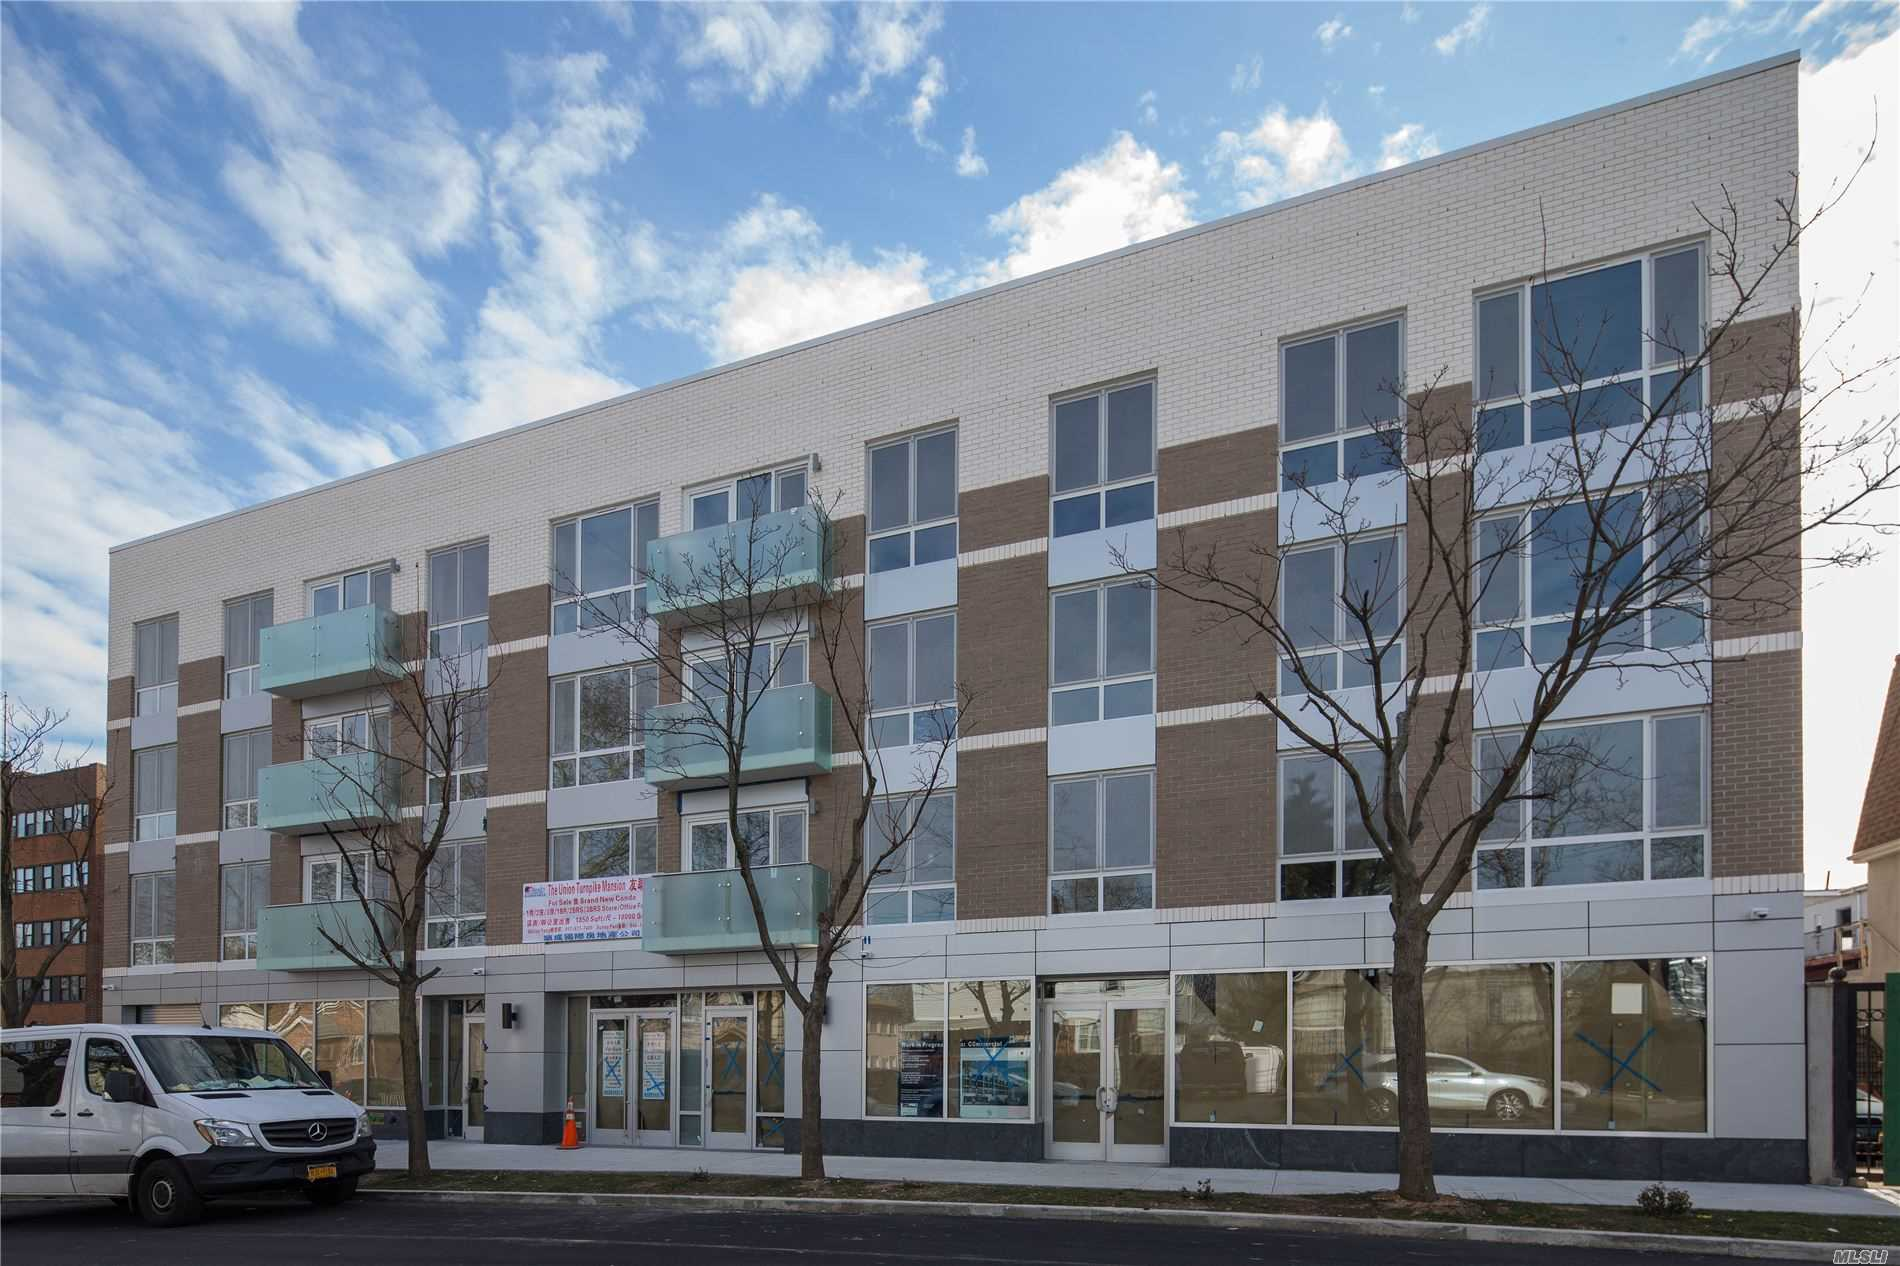 Acquisto commerciale in 158-15 Union Turnpike, Kew Garden Hills, NY ,11367